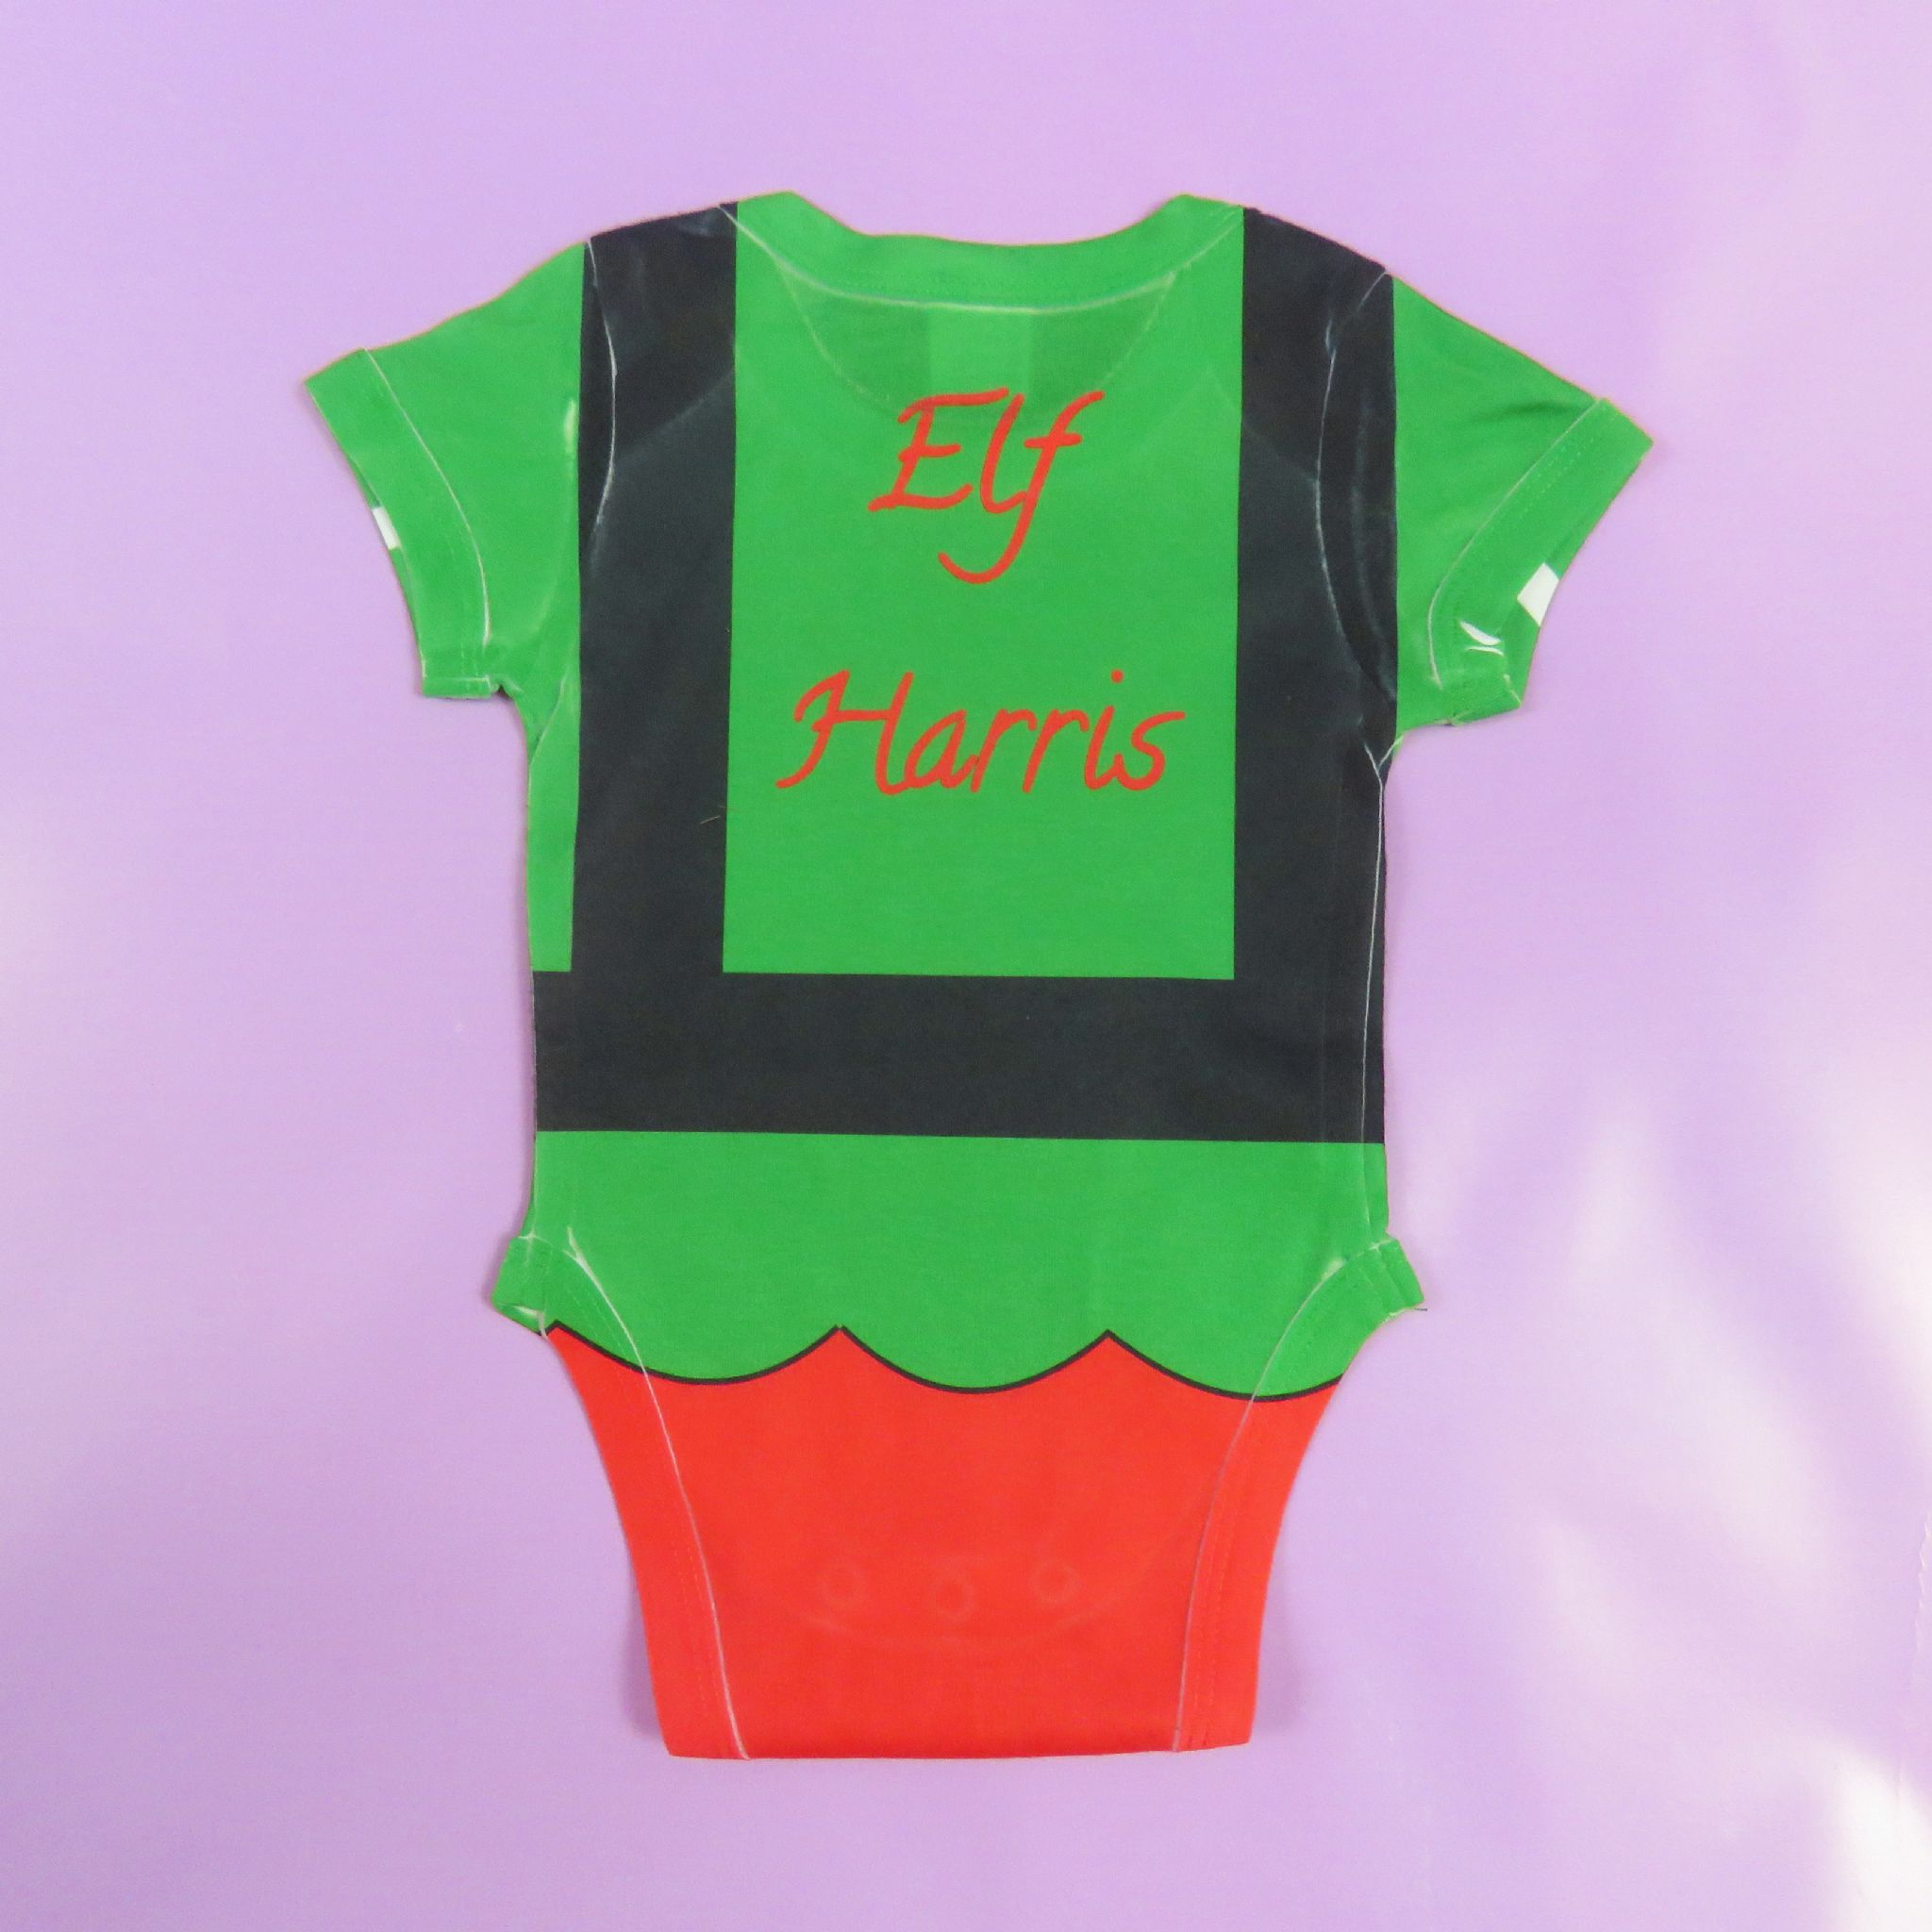 ad5a2d2e41c3 Elf Baby Vest Full Print Personalised First Christmas Babyvest 1st ...